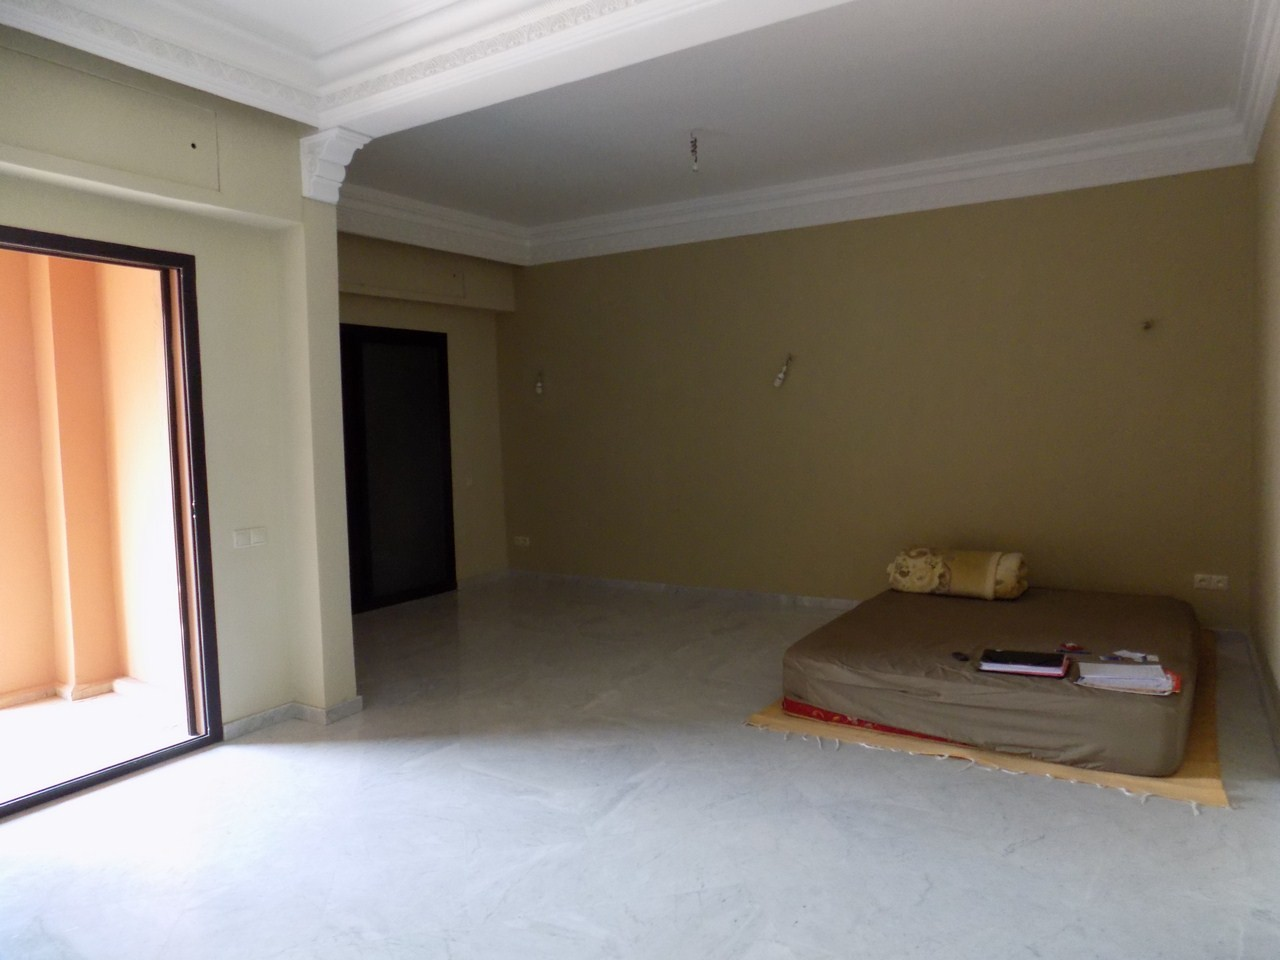 Vente <strong>Appartement</strong> Marrakech Hivernage <strong>125 m2</strong>